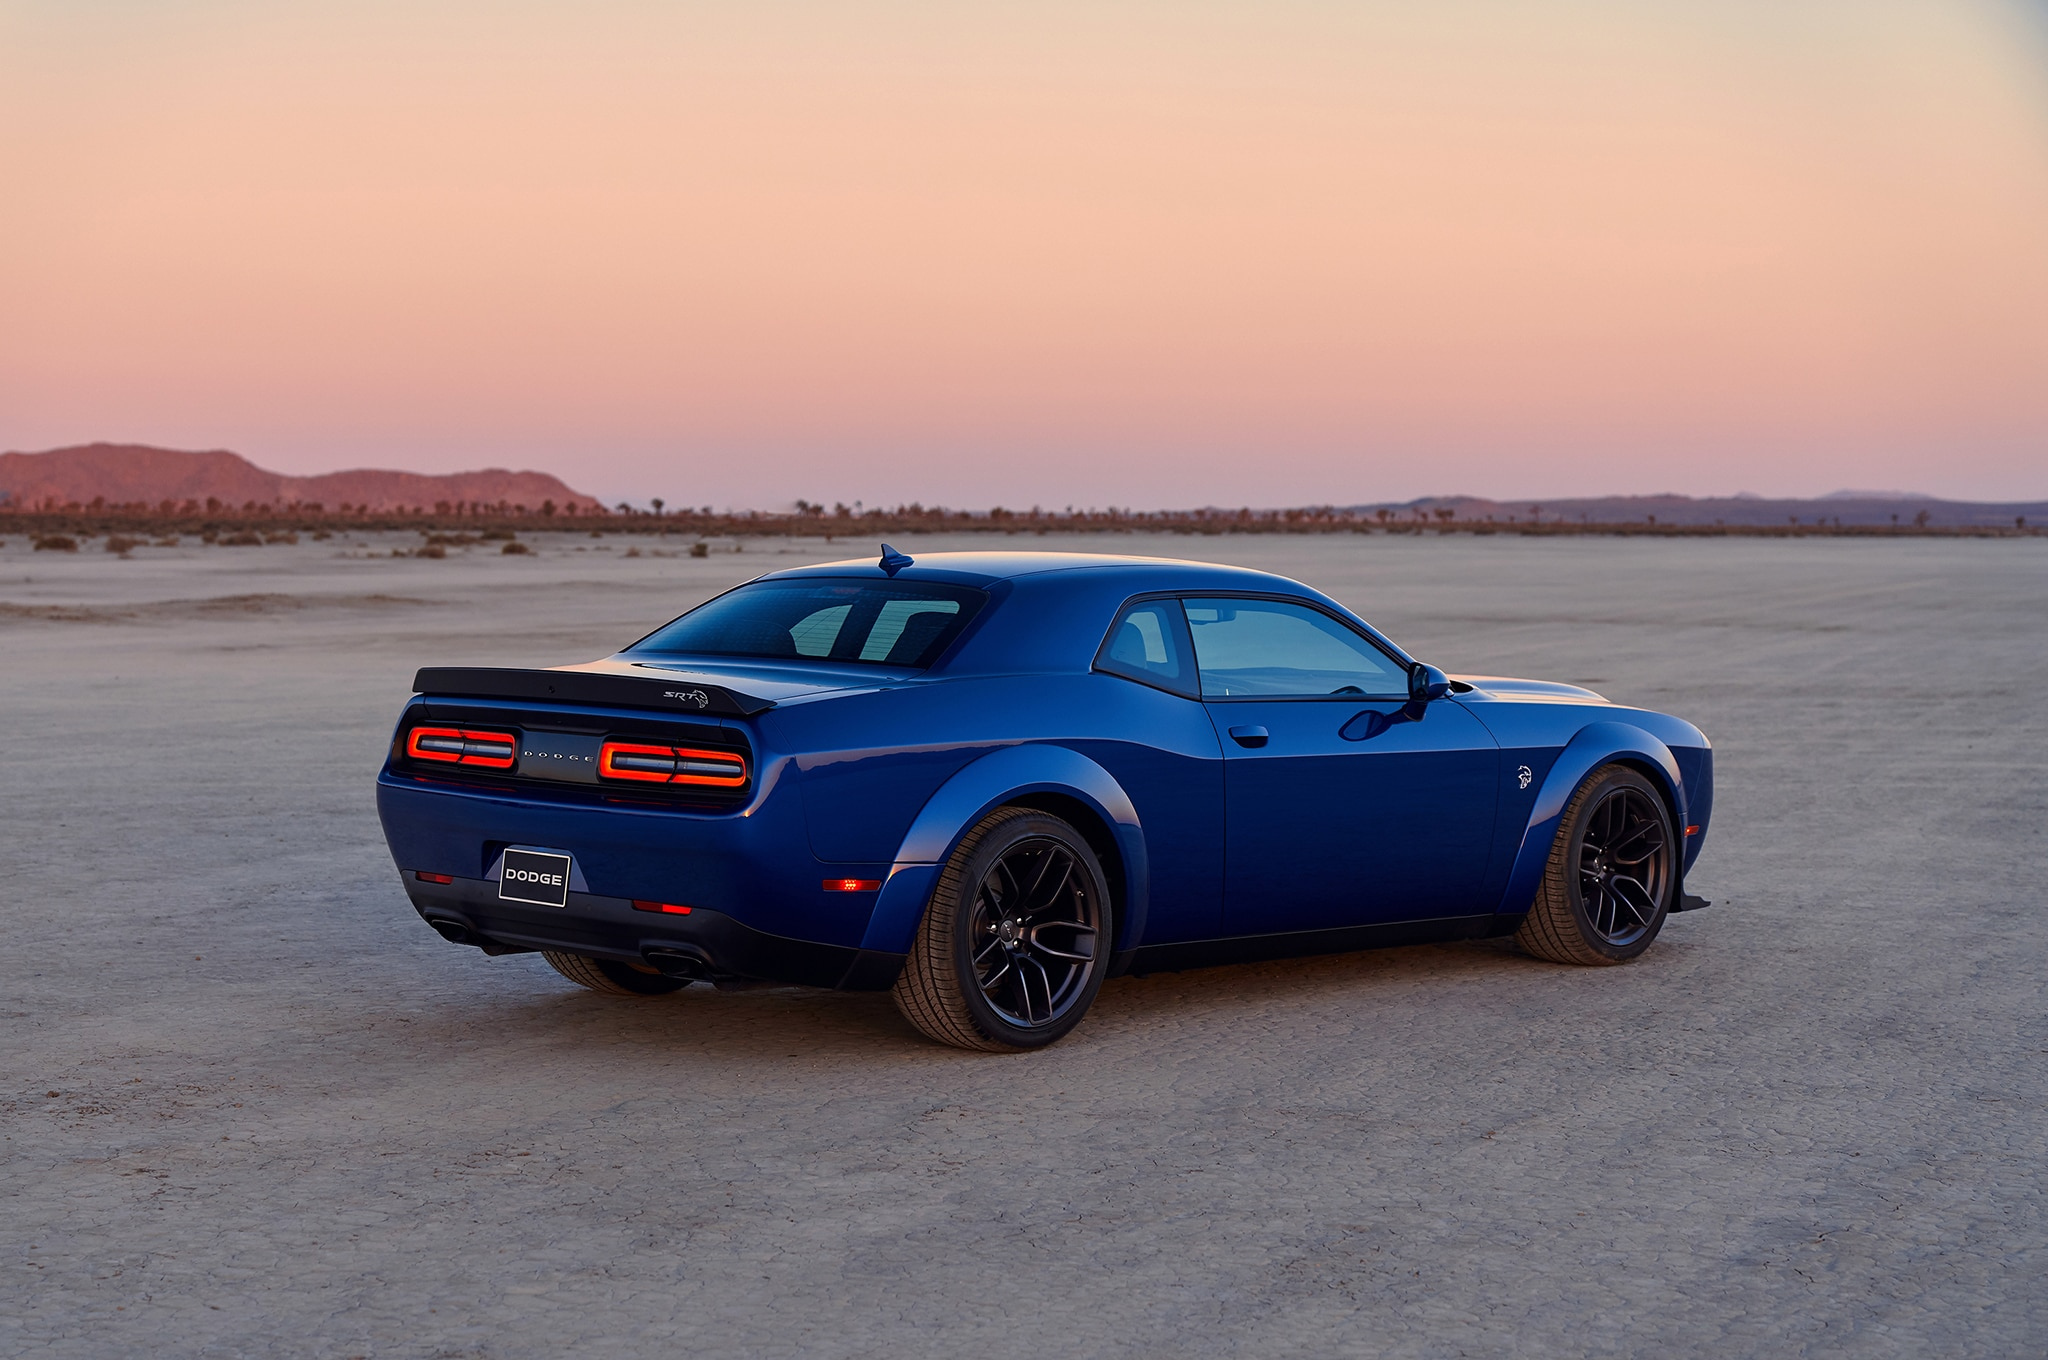 Dodge Latest Models >> Seven Key Facts About the 2019 Dodge Challenger | Automobile Magazine